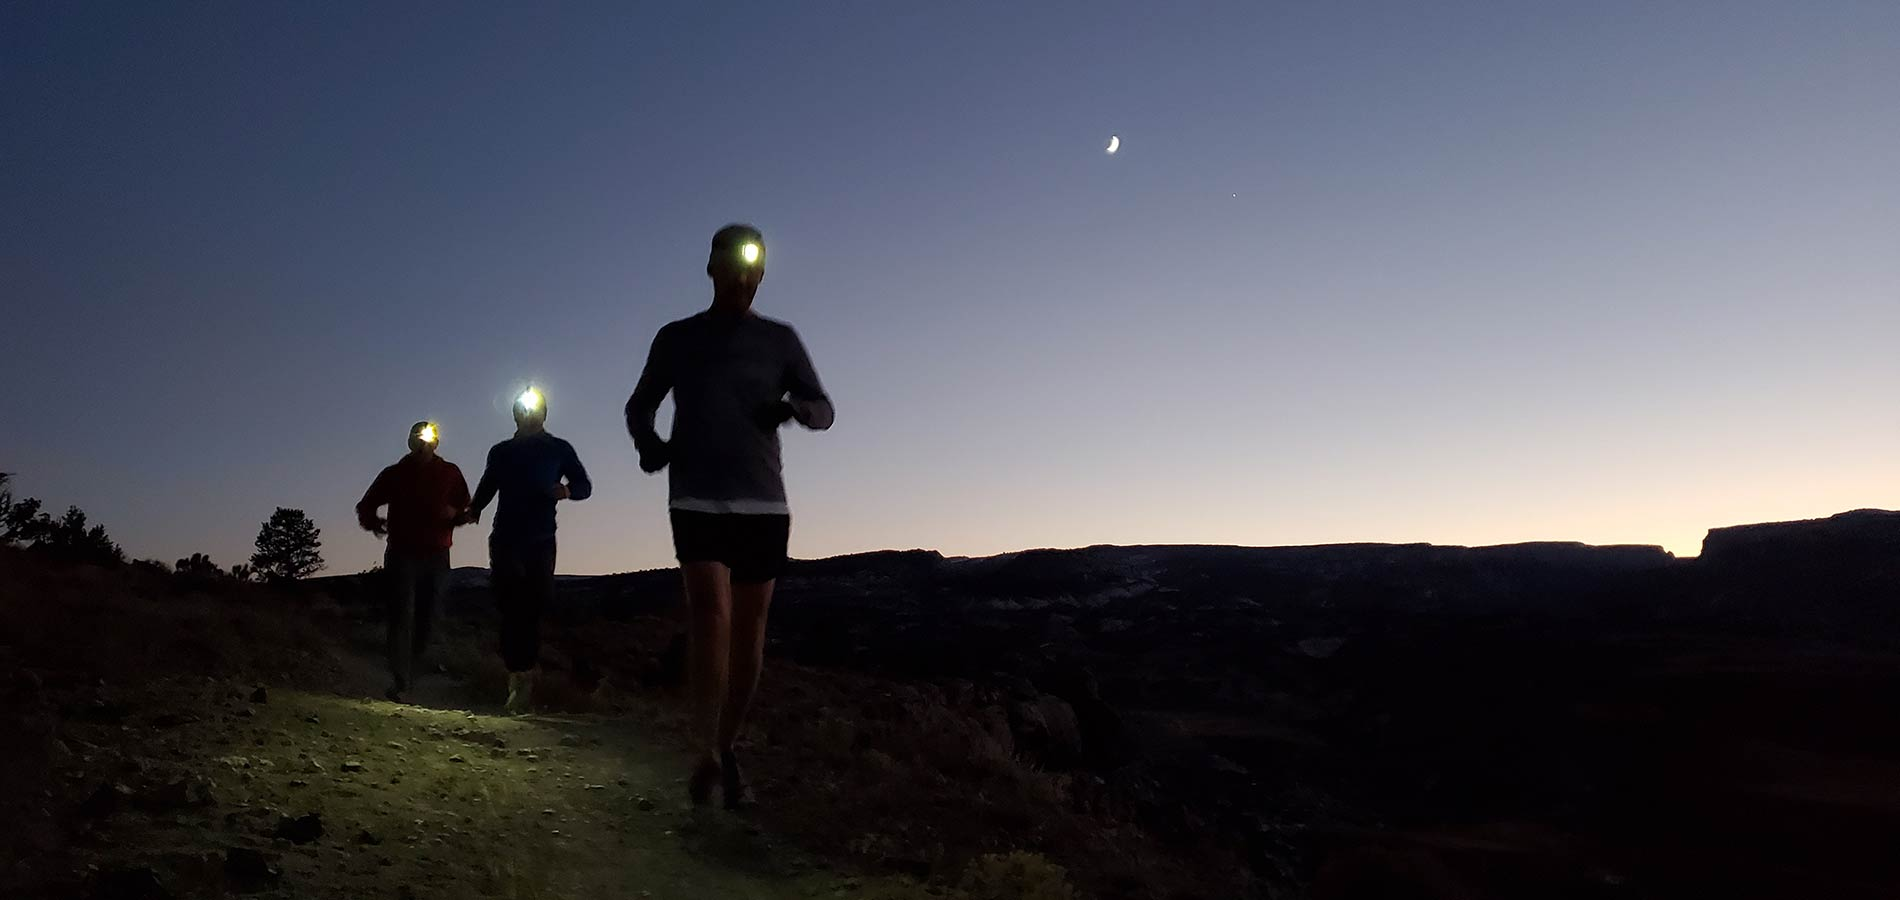 Evening running with Striders in Grand Junction, Colorado